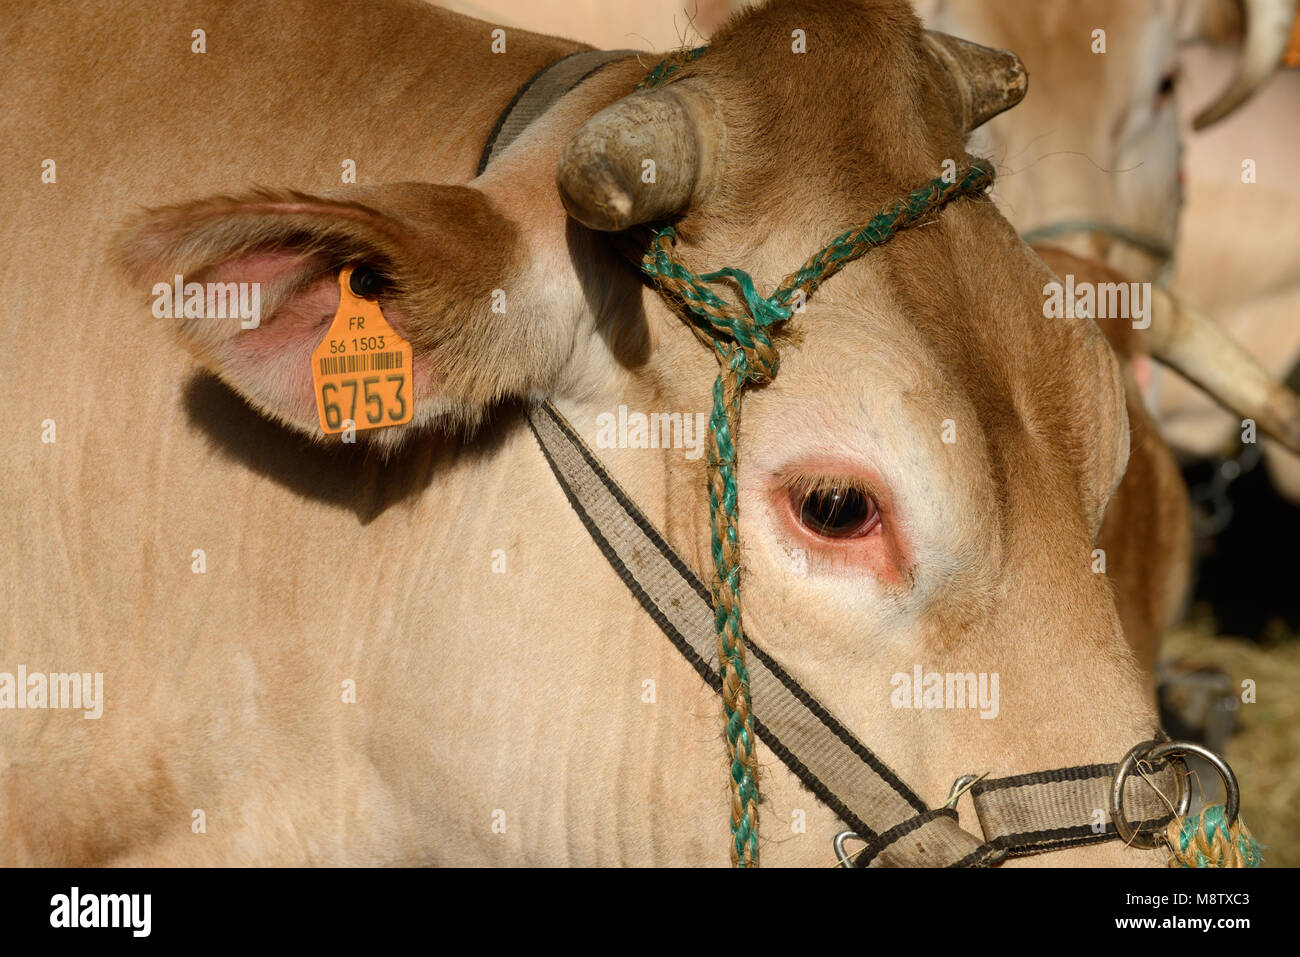 Blonde d'Aquitaine Beef Cow or Cattle with Traceability or Identification Tag Attached to Ear - Stock Image